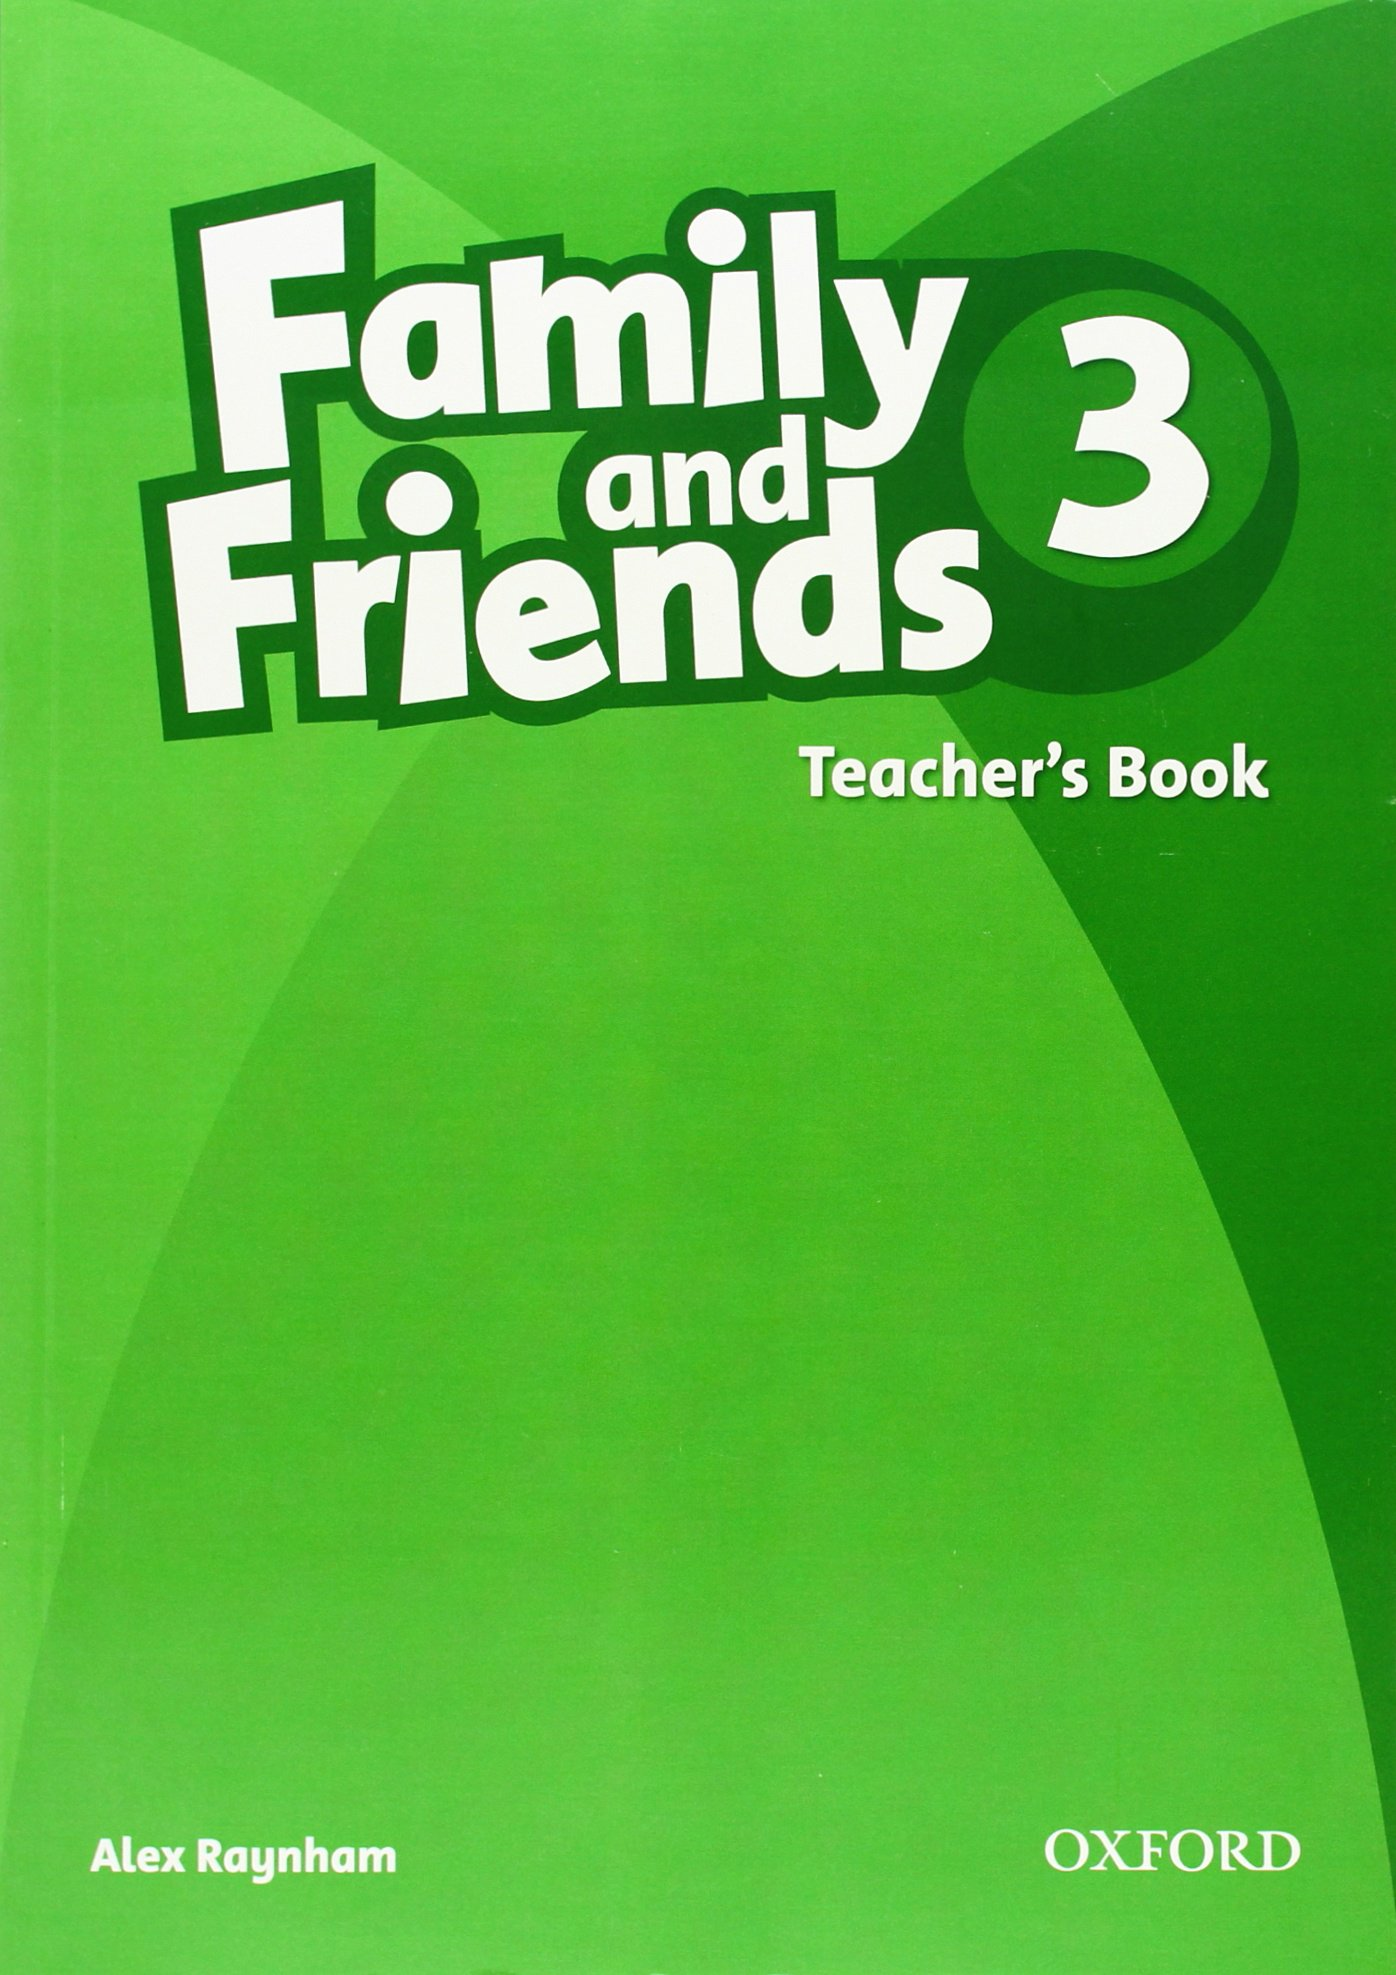 FAMILY & FRIENDS 3 Teacher's Book